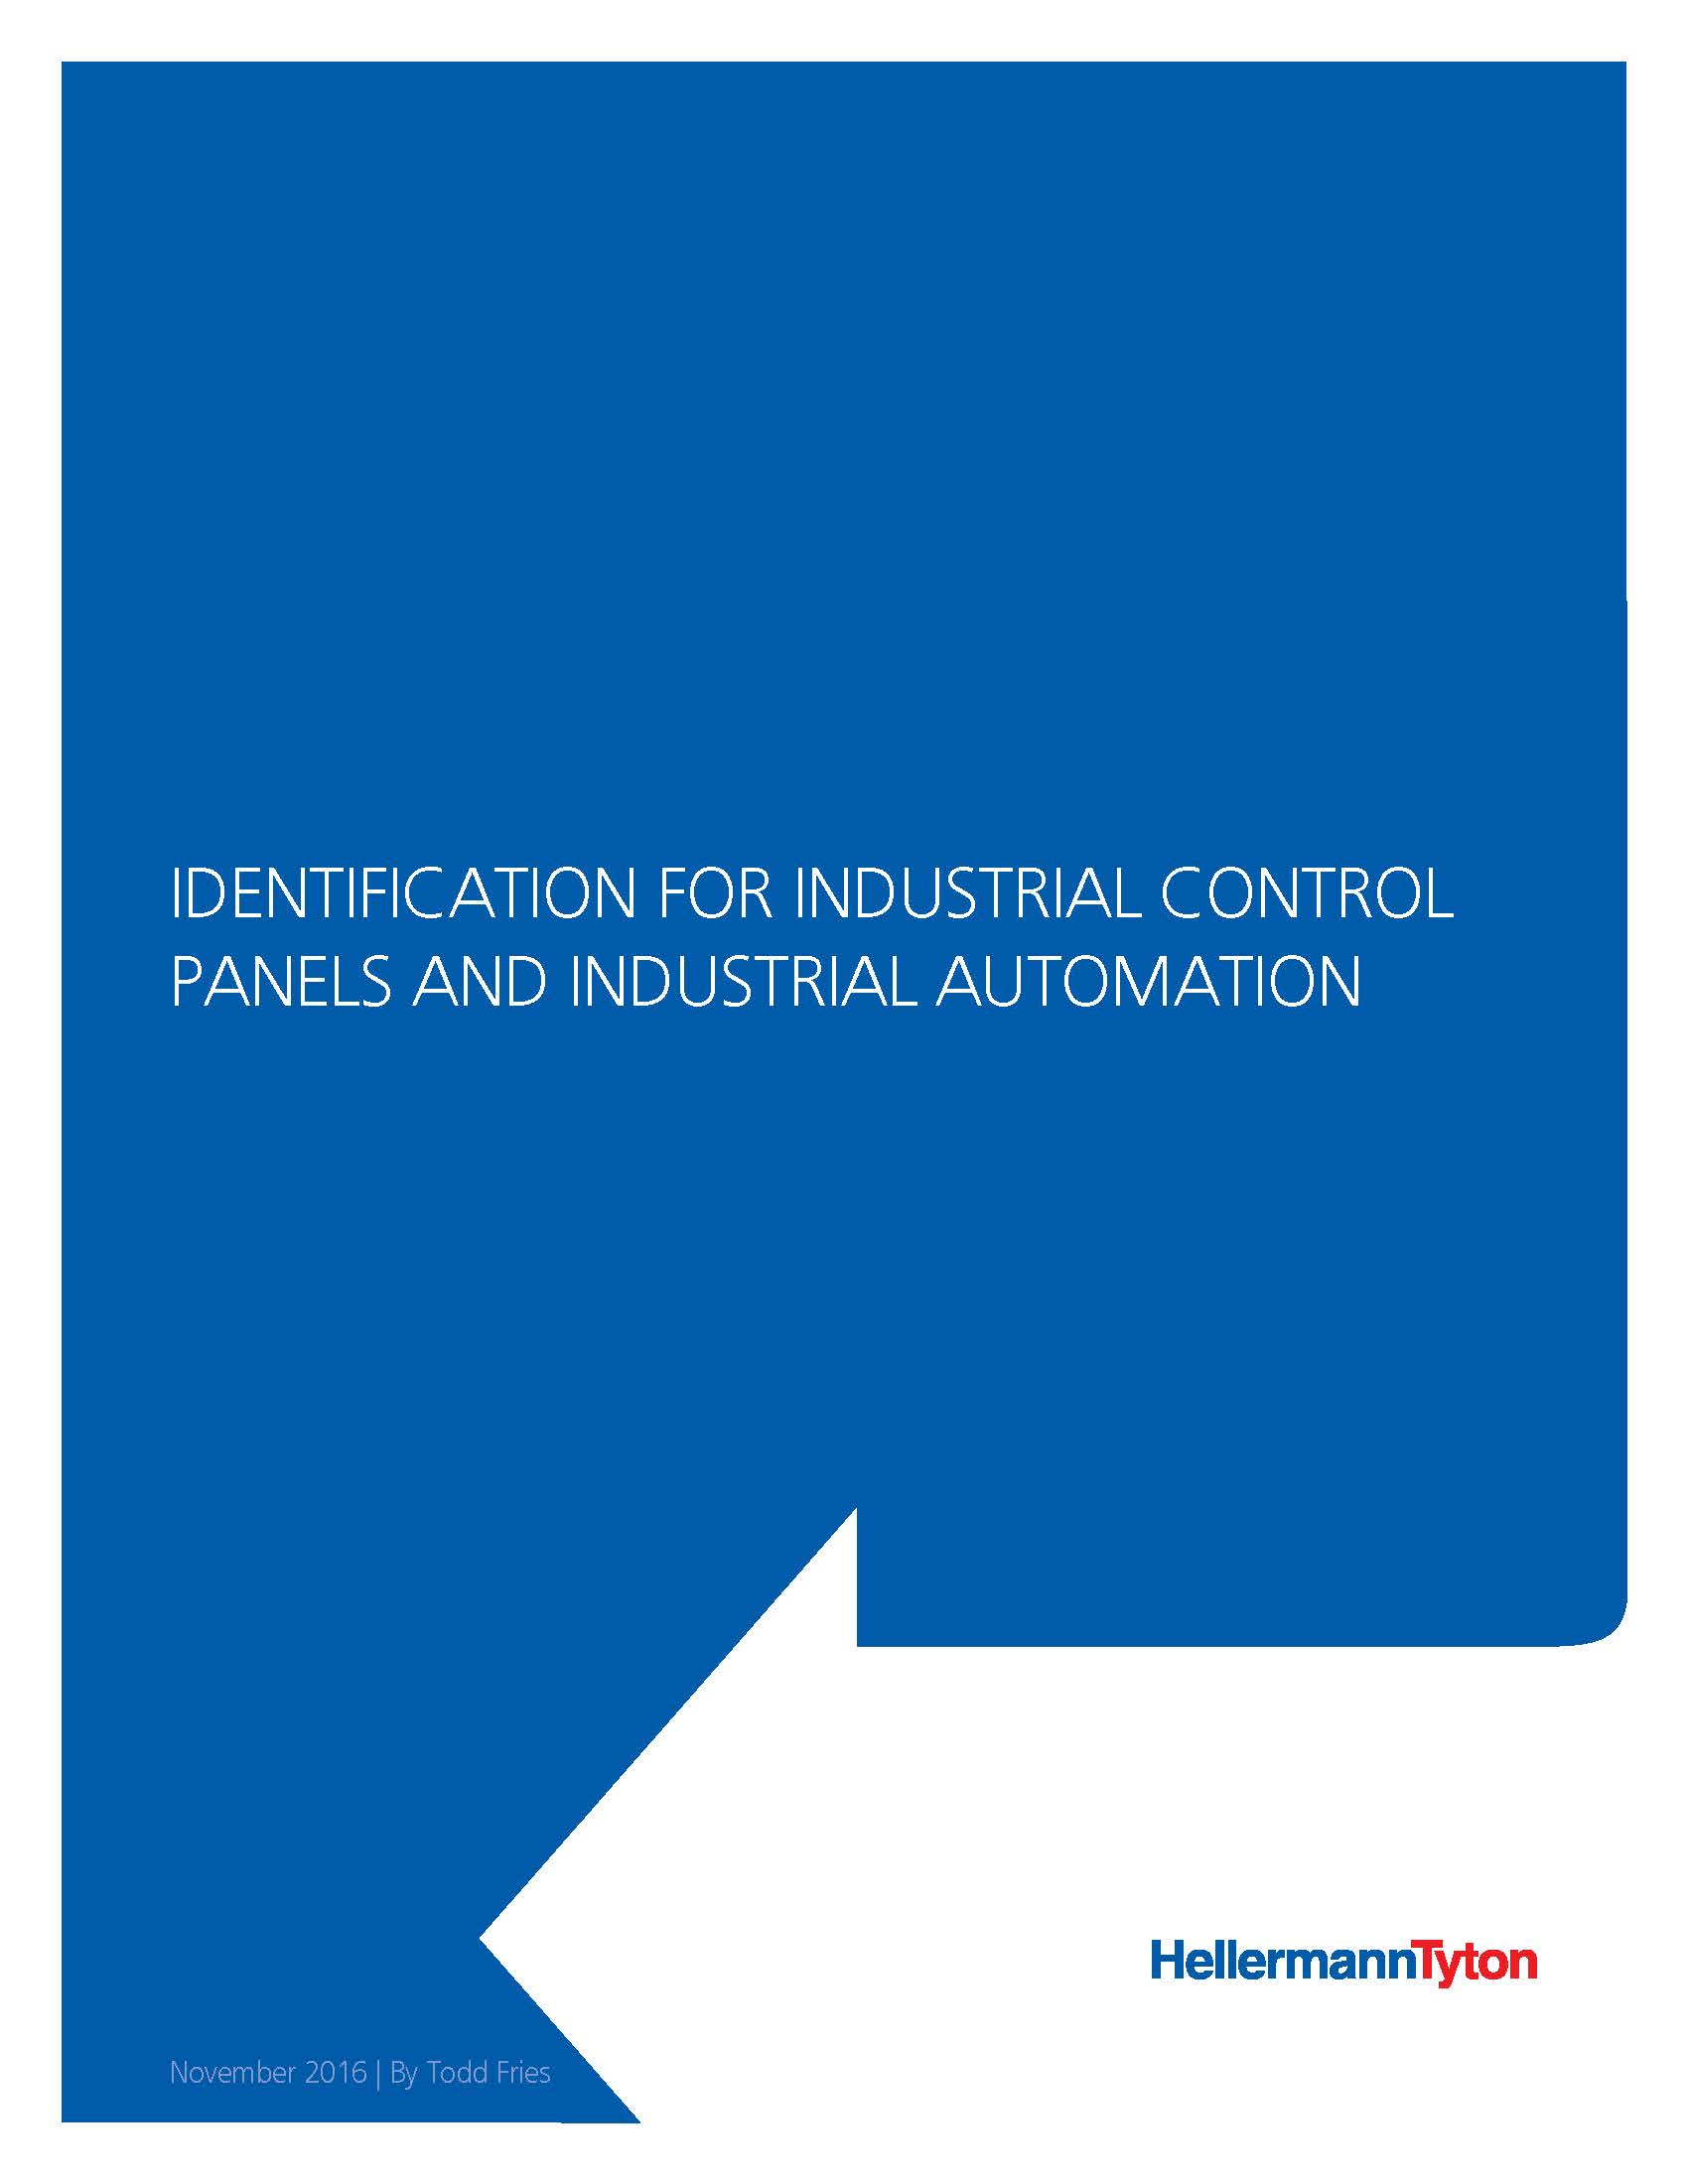 ID for Industrial Control Panel & Automation